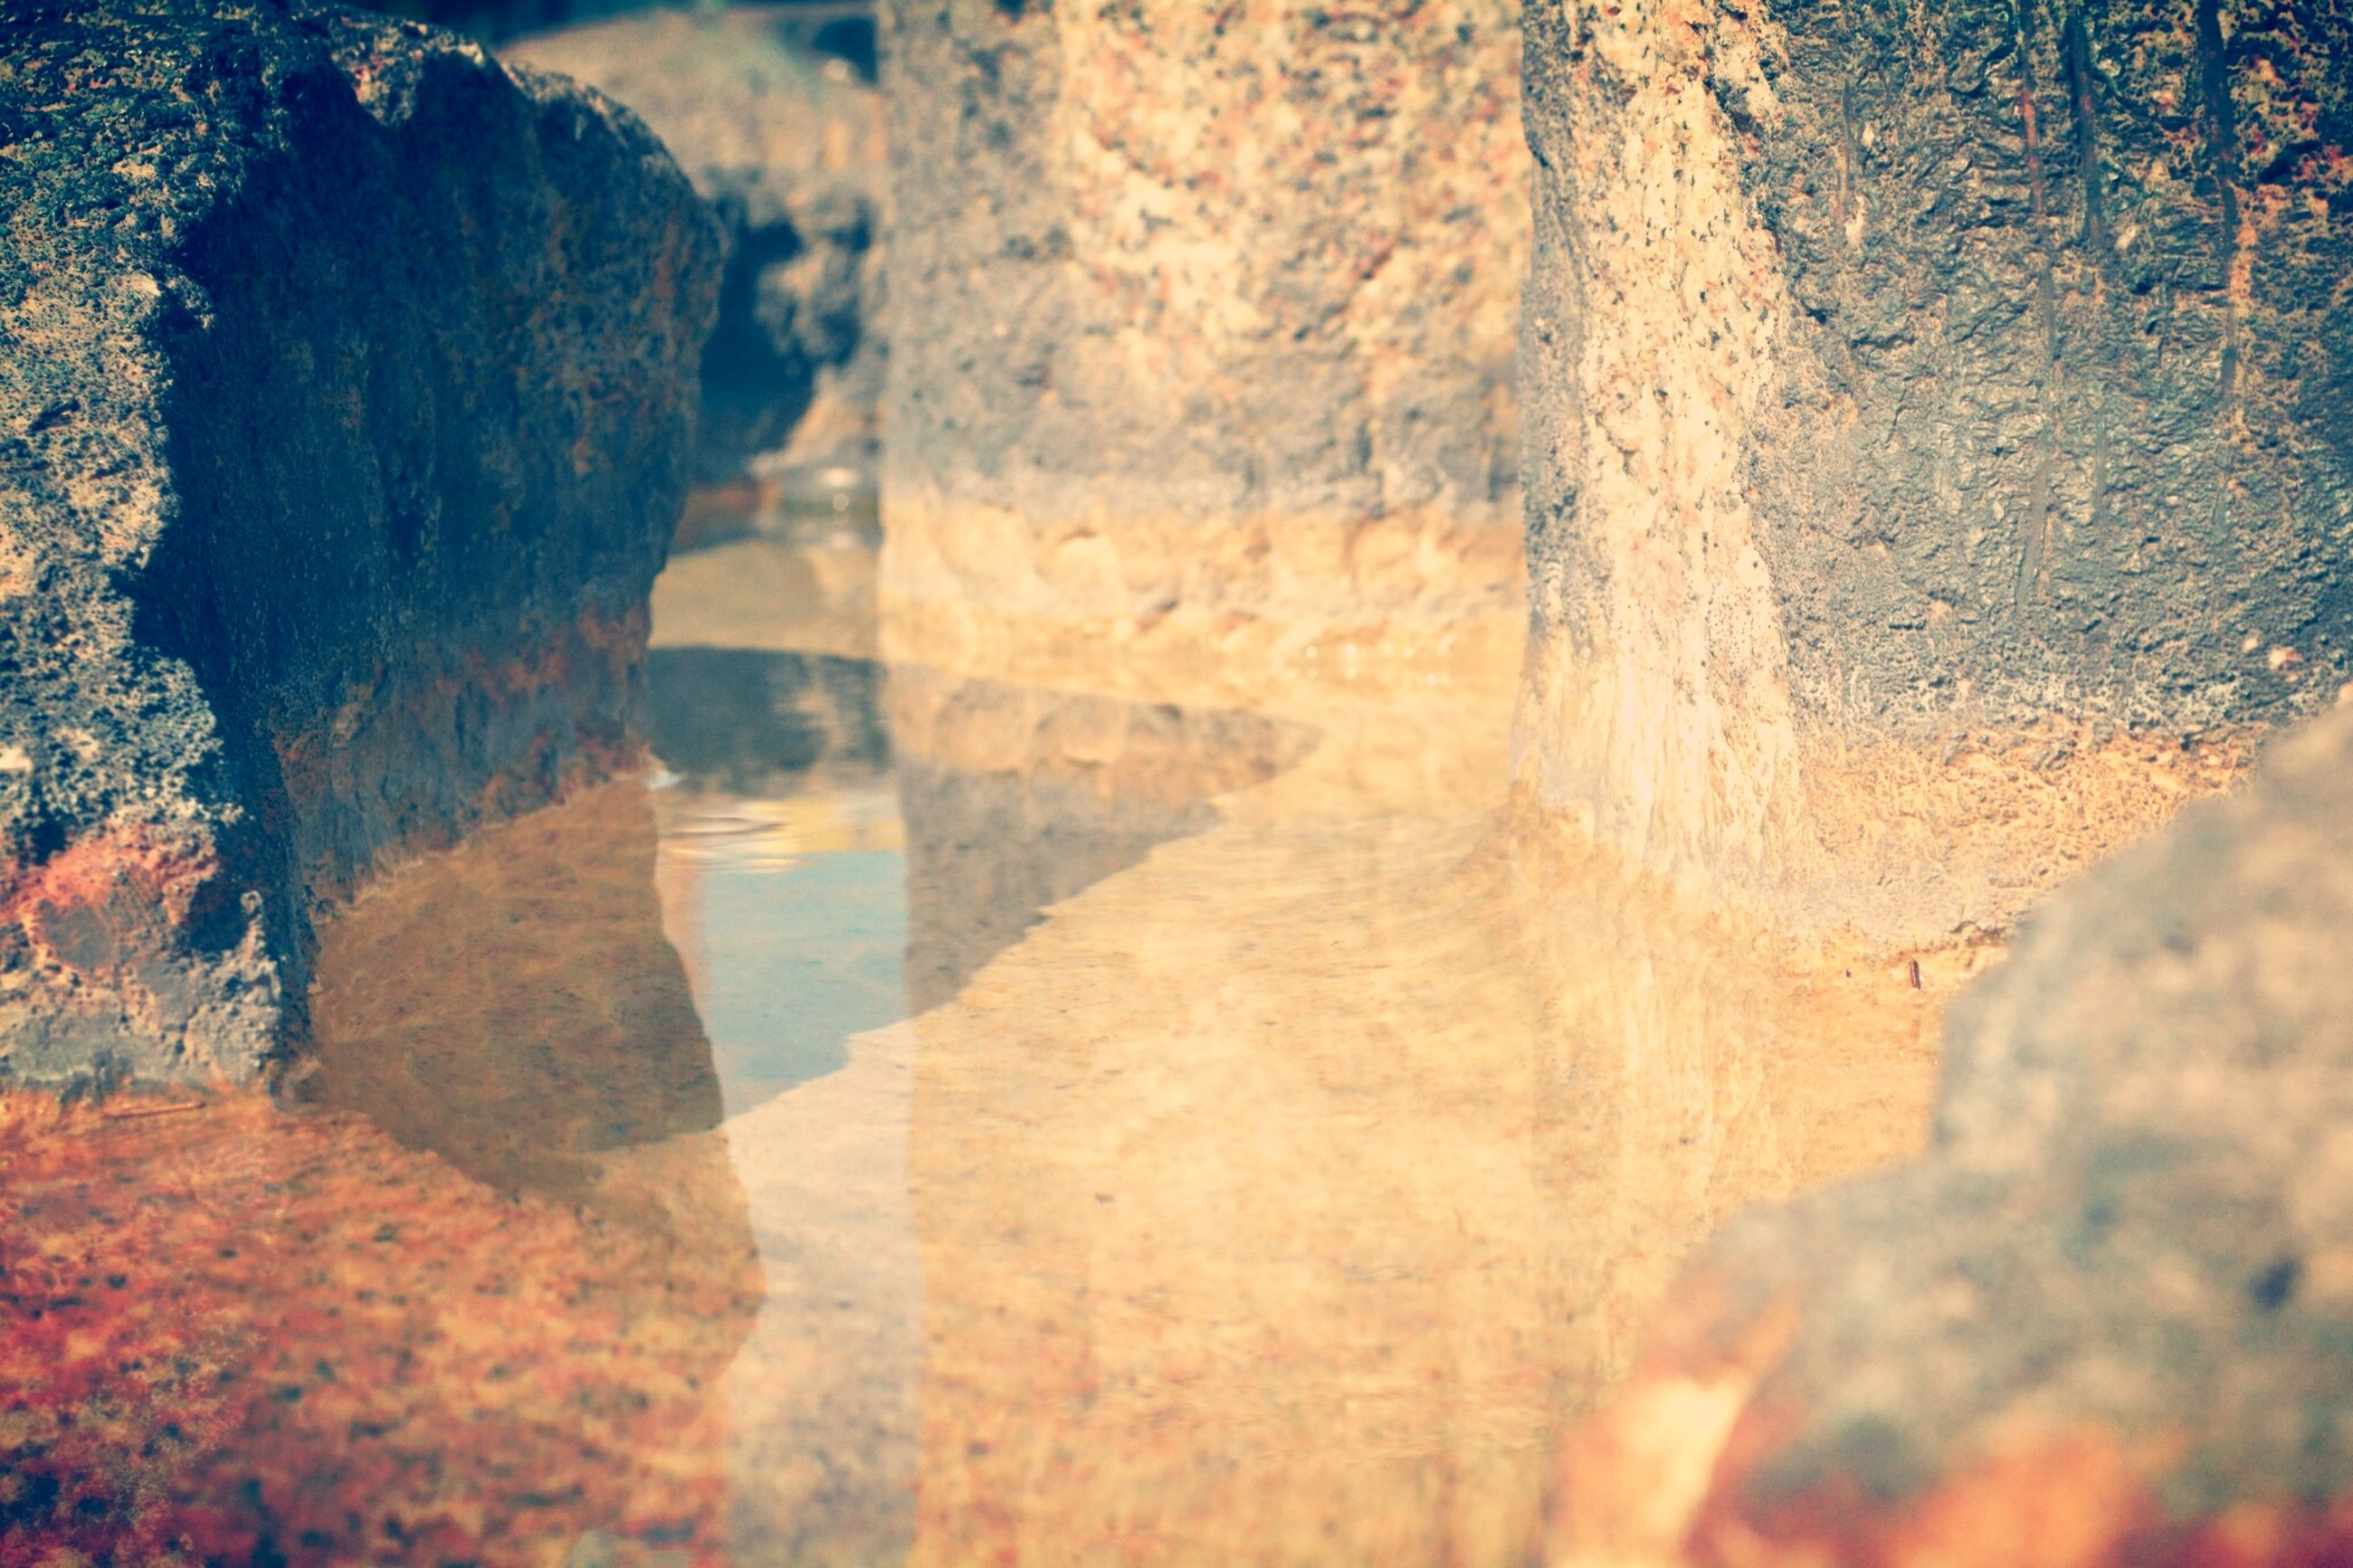 rock formation, rock - object, geology, nature, water, tranquility, scenics, beauty in nature, rock, tourism, eroded, cave, travel destinations, cliff, sunlight, tranquil scene, physical geography, travel, outdoors, famous place